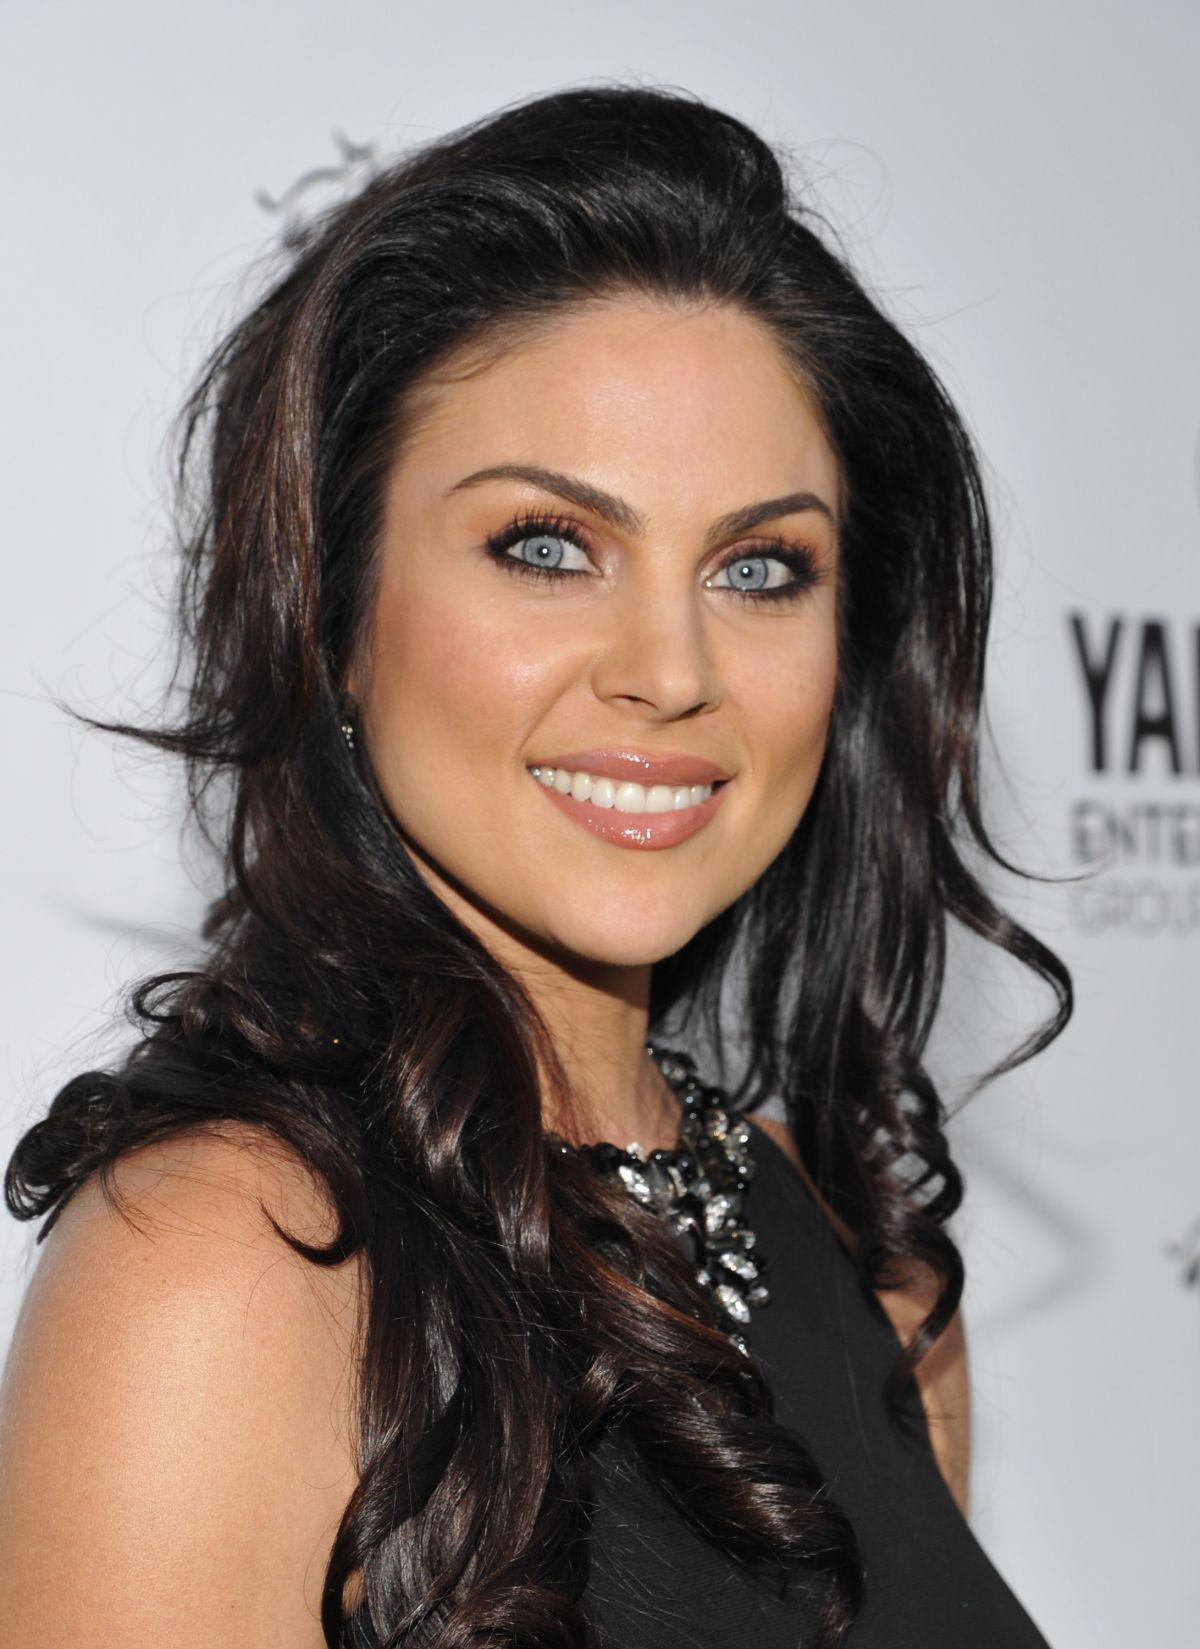 nadia bjorlin and brandon beemernadia bjorlin wiki, nadia bjorlin instagram, nadia bjorlin pictures, nadia bjorlin twitter, nadia bjorlin bruce willis, nadia bjorlin, nadia bjorlin and brandon beemer, nadia bjorlin facebook, nadia bjorlin husband, nadia bjorlin 2015, nadia bjorlin 2014, nadia bjorlin net worth